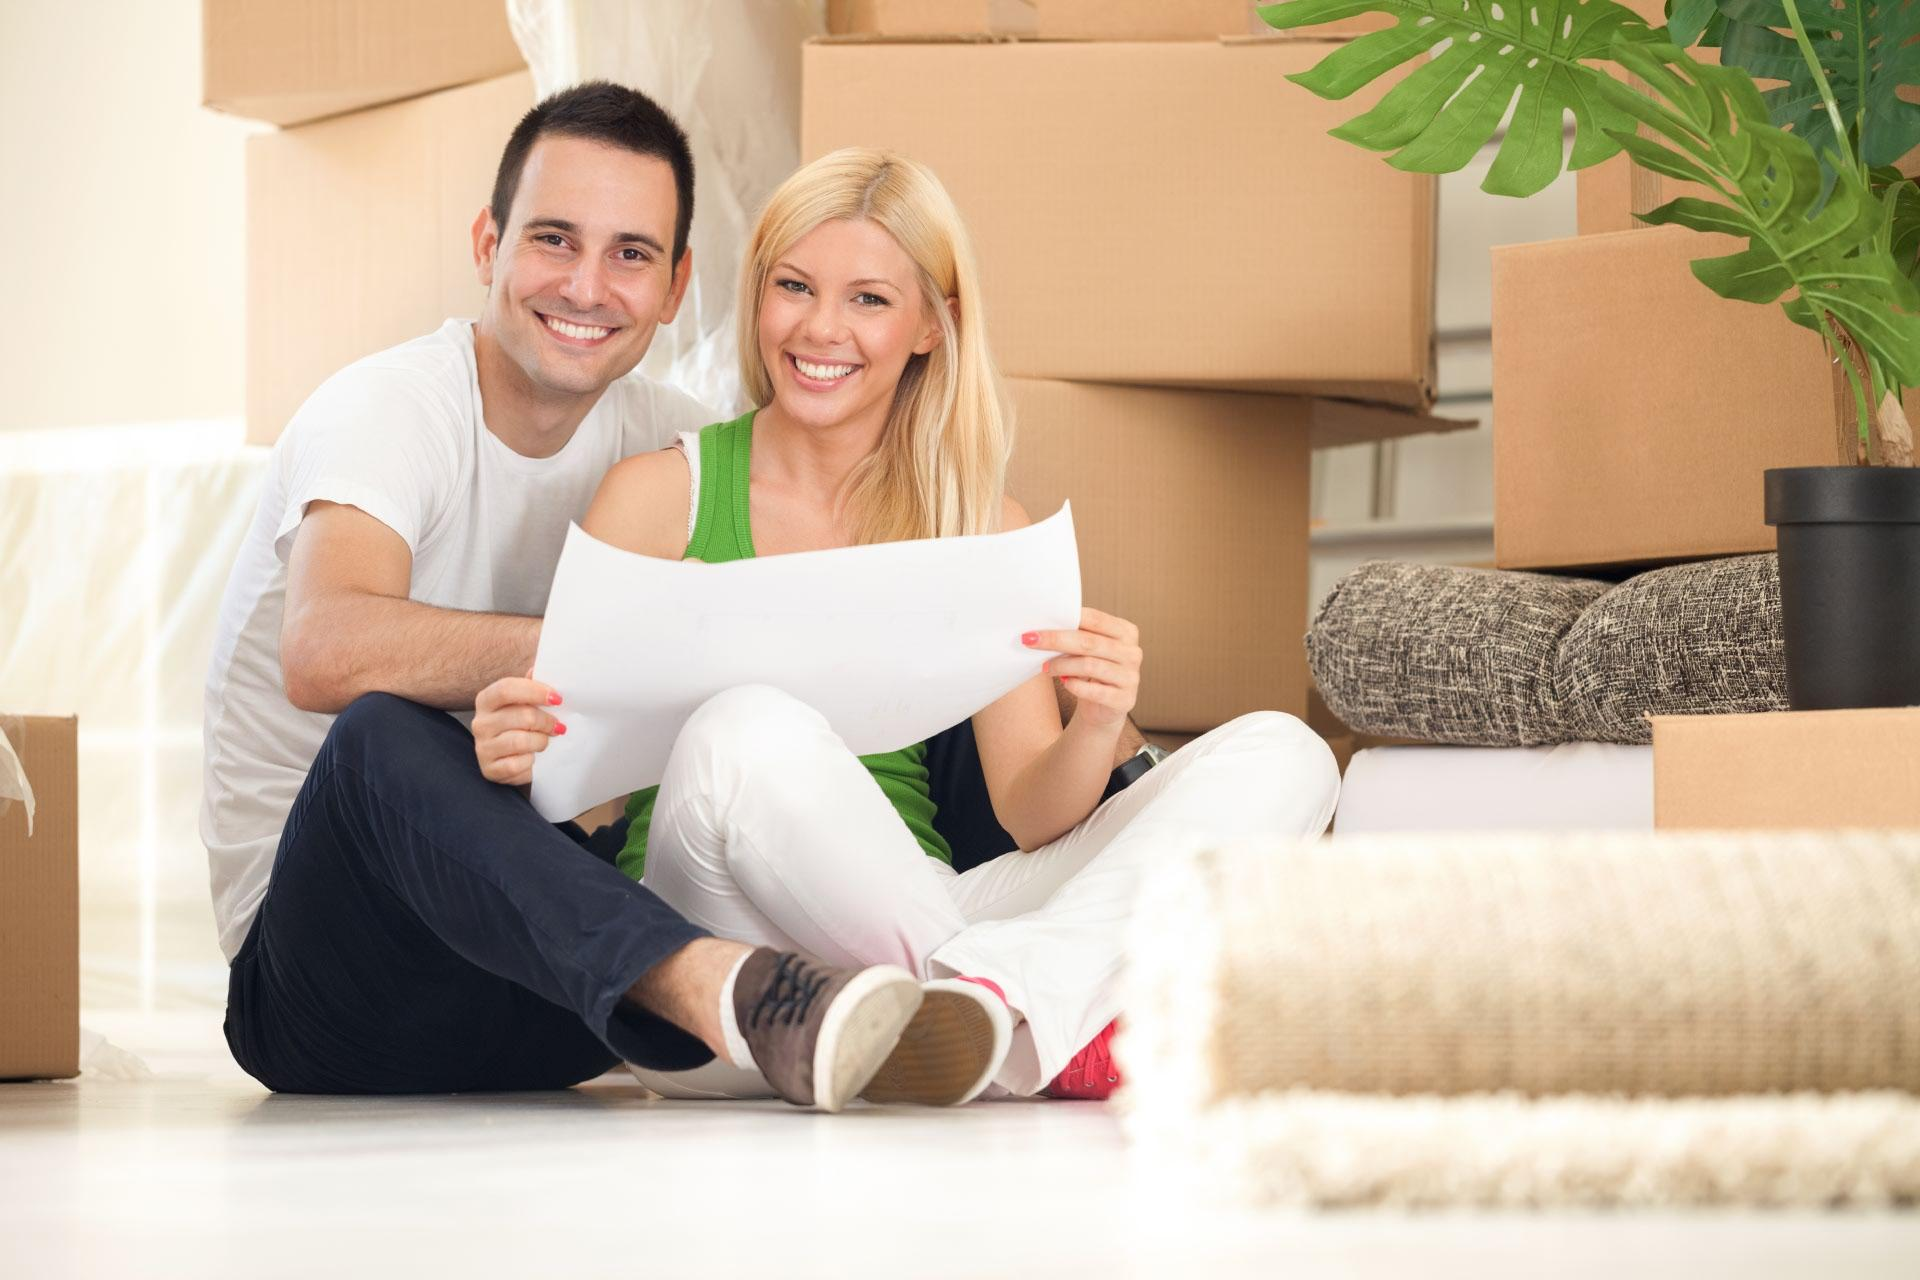 Happy young couple sitting in front of boxes